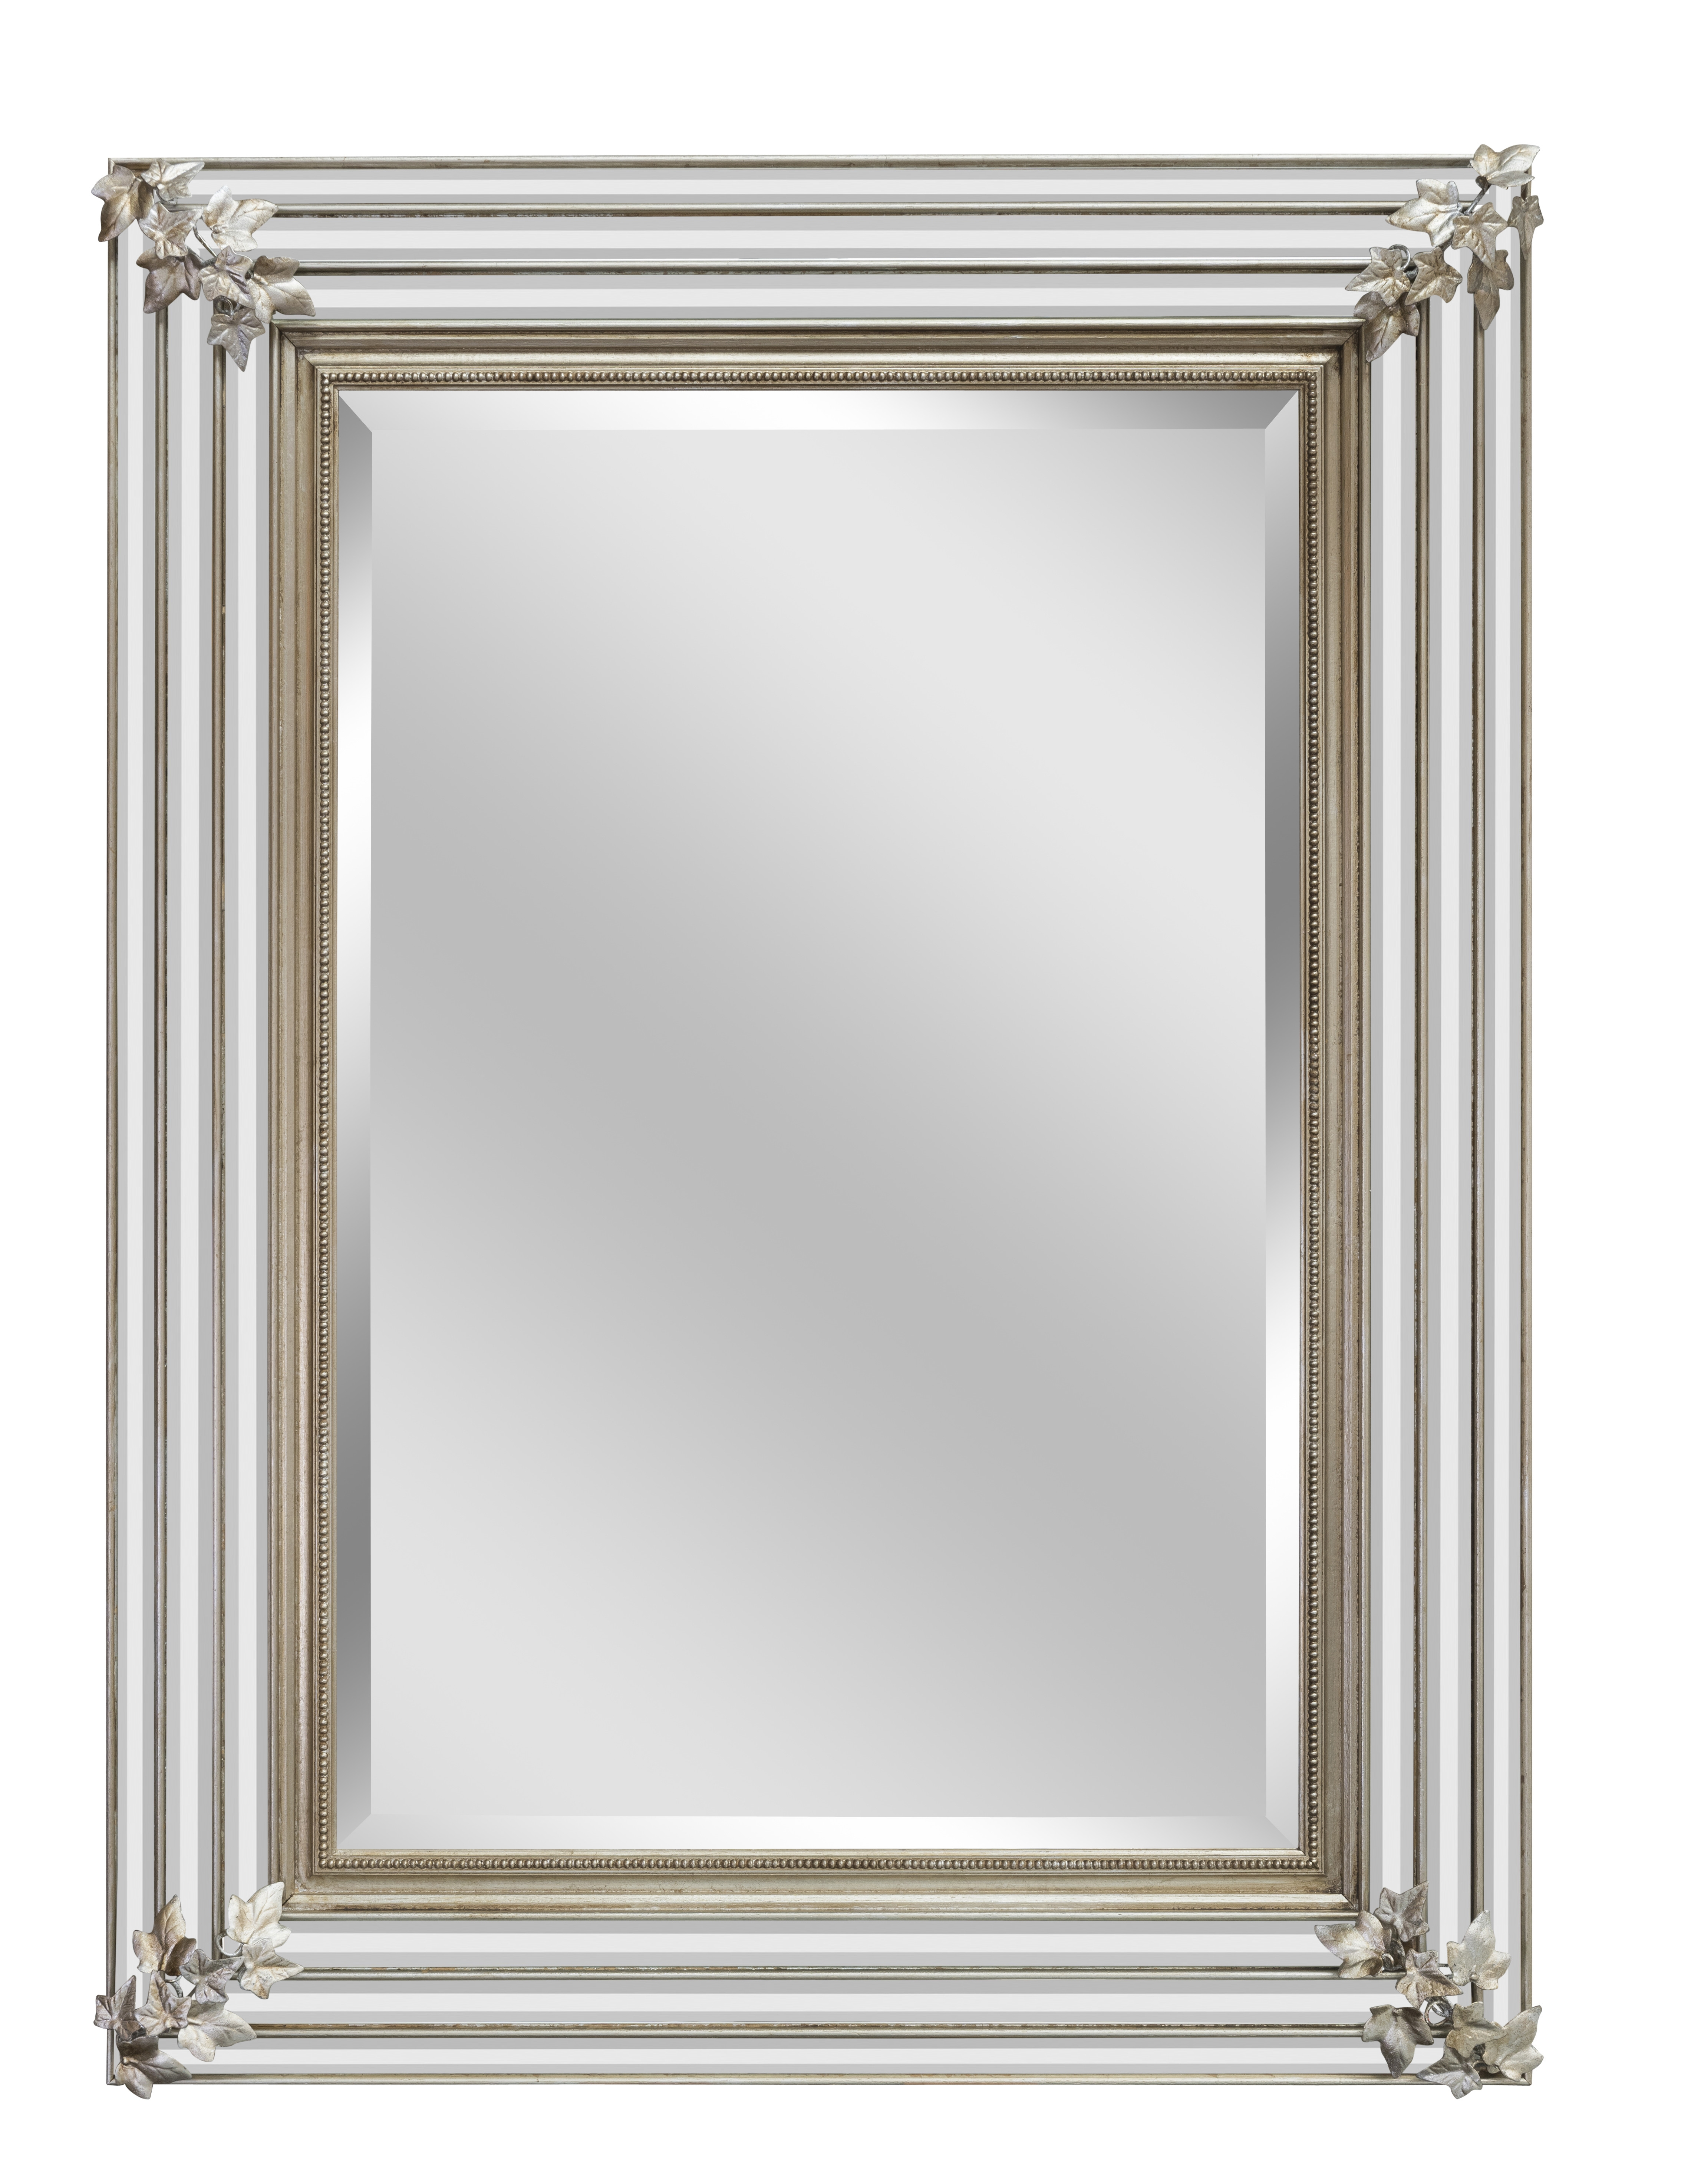 Ivy Cushion Mirror Bedroom Mirrors For Sale Panfili Mirrors Pertaining To Mirrors For Sale (Image 9 of 15)